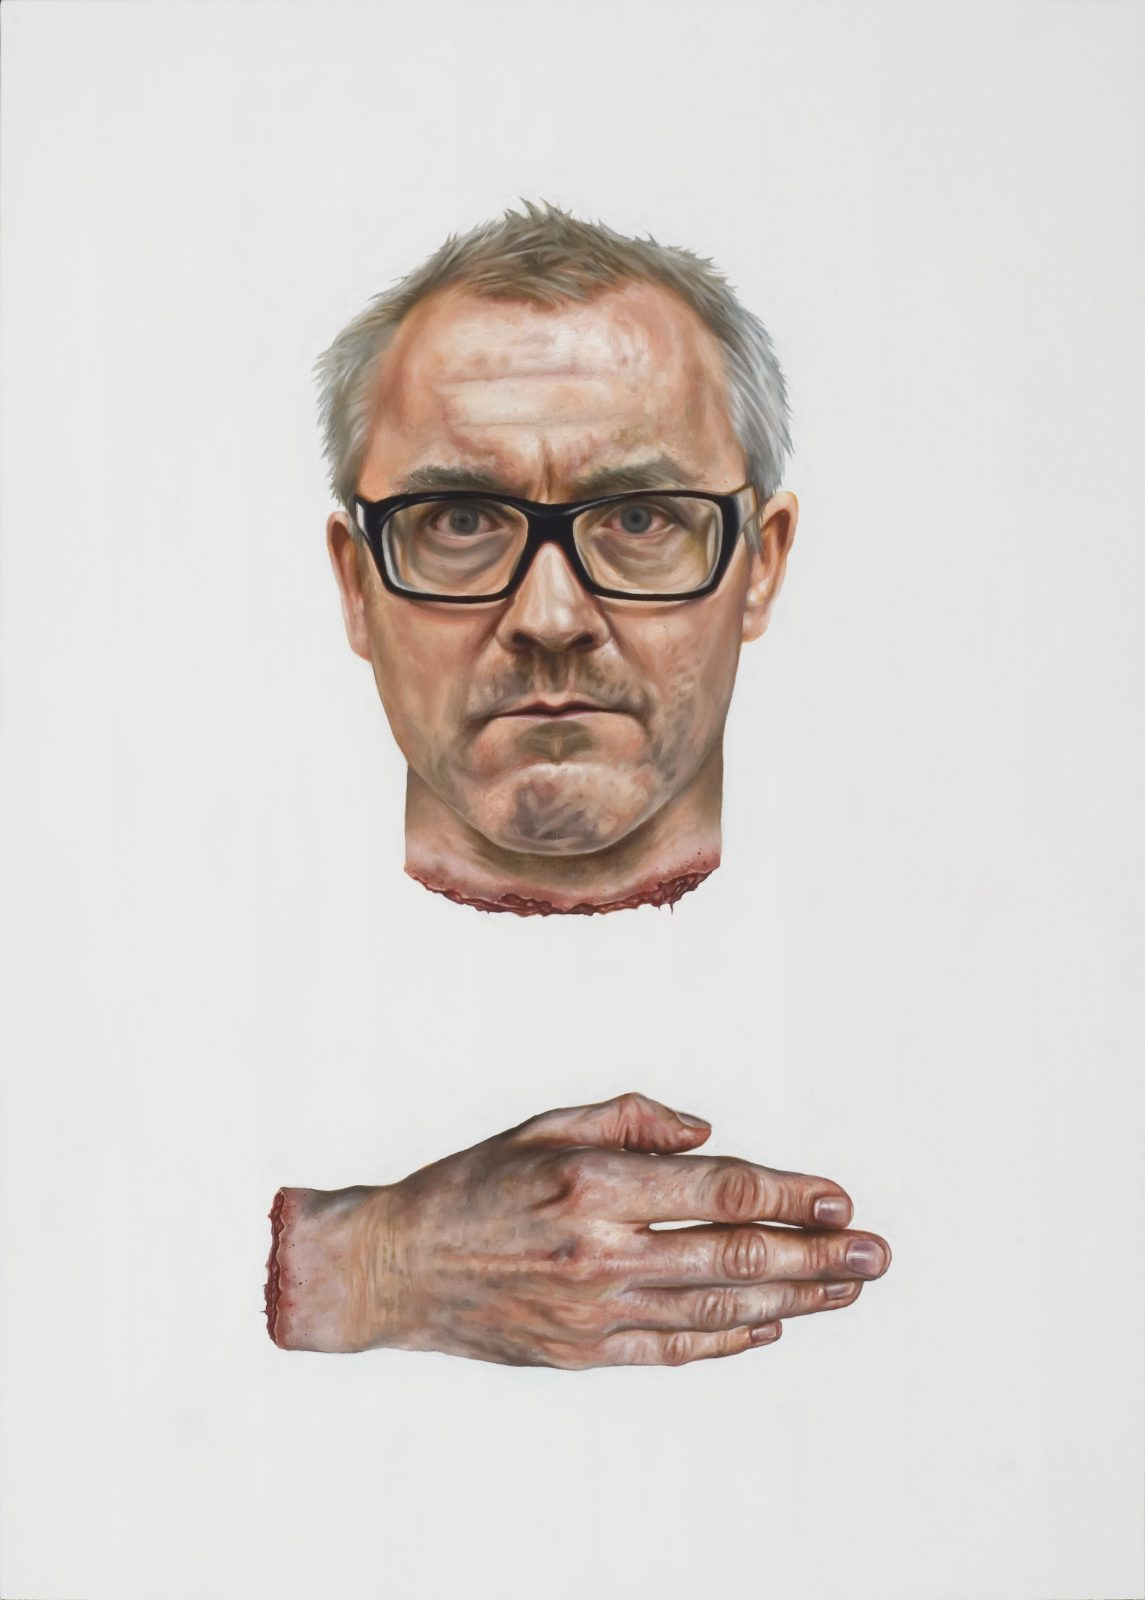 László Győrffy: Bring Me the Head of Damien Hirst (Envy)